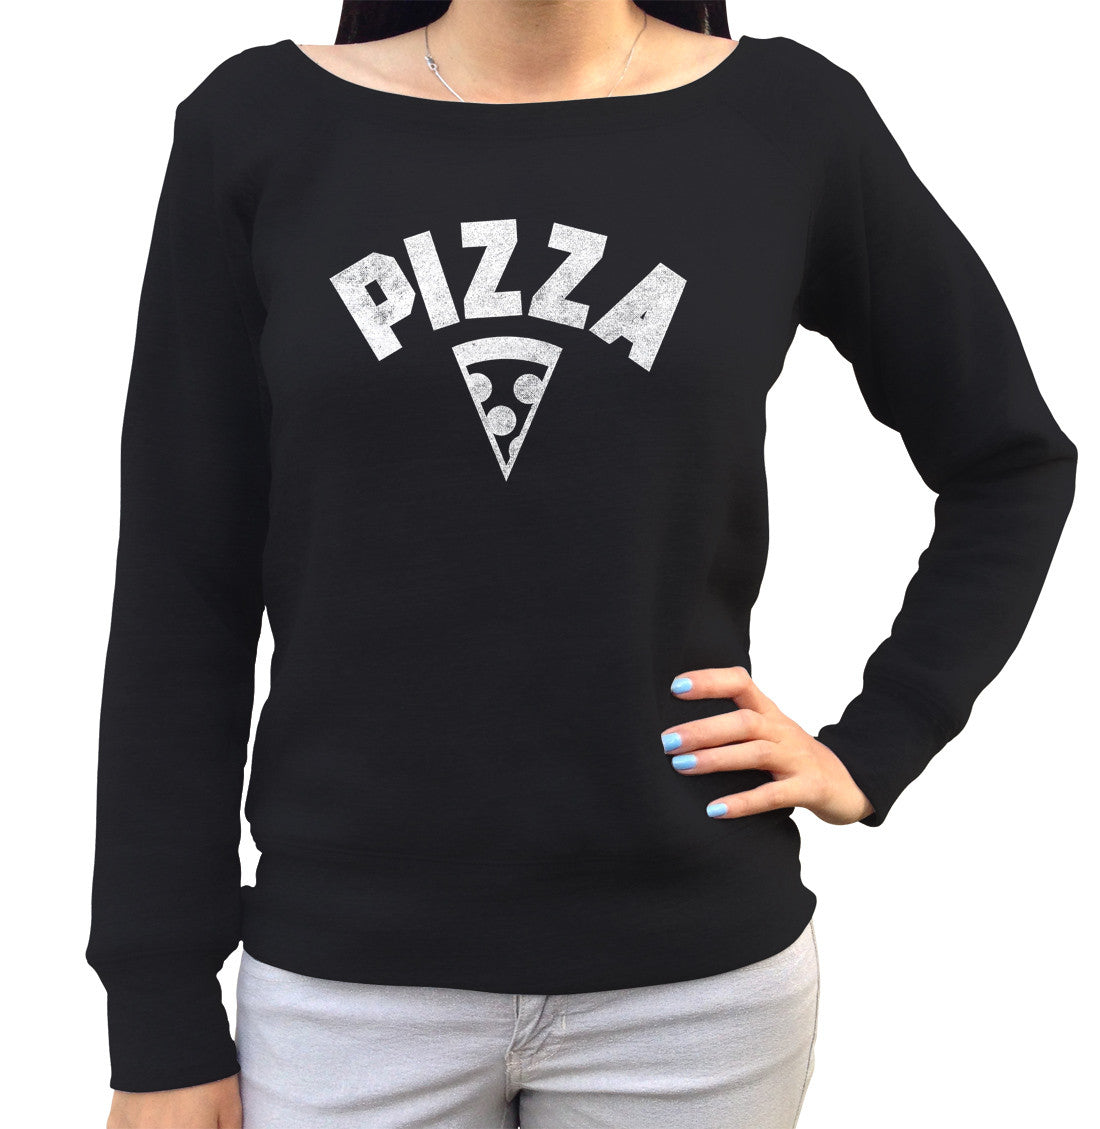 Women's Team Pizza Scoop Neck Fleece Vintage Retro Athletic Logo Inspired